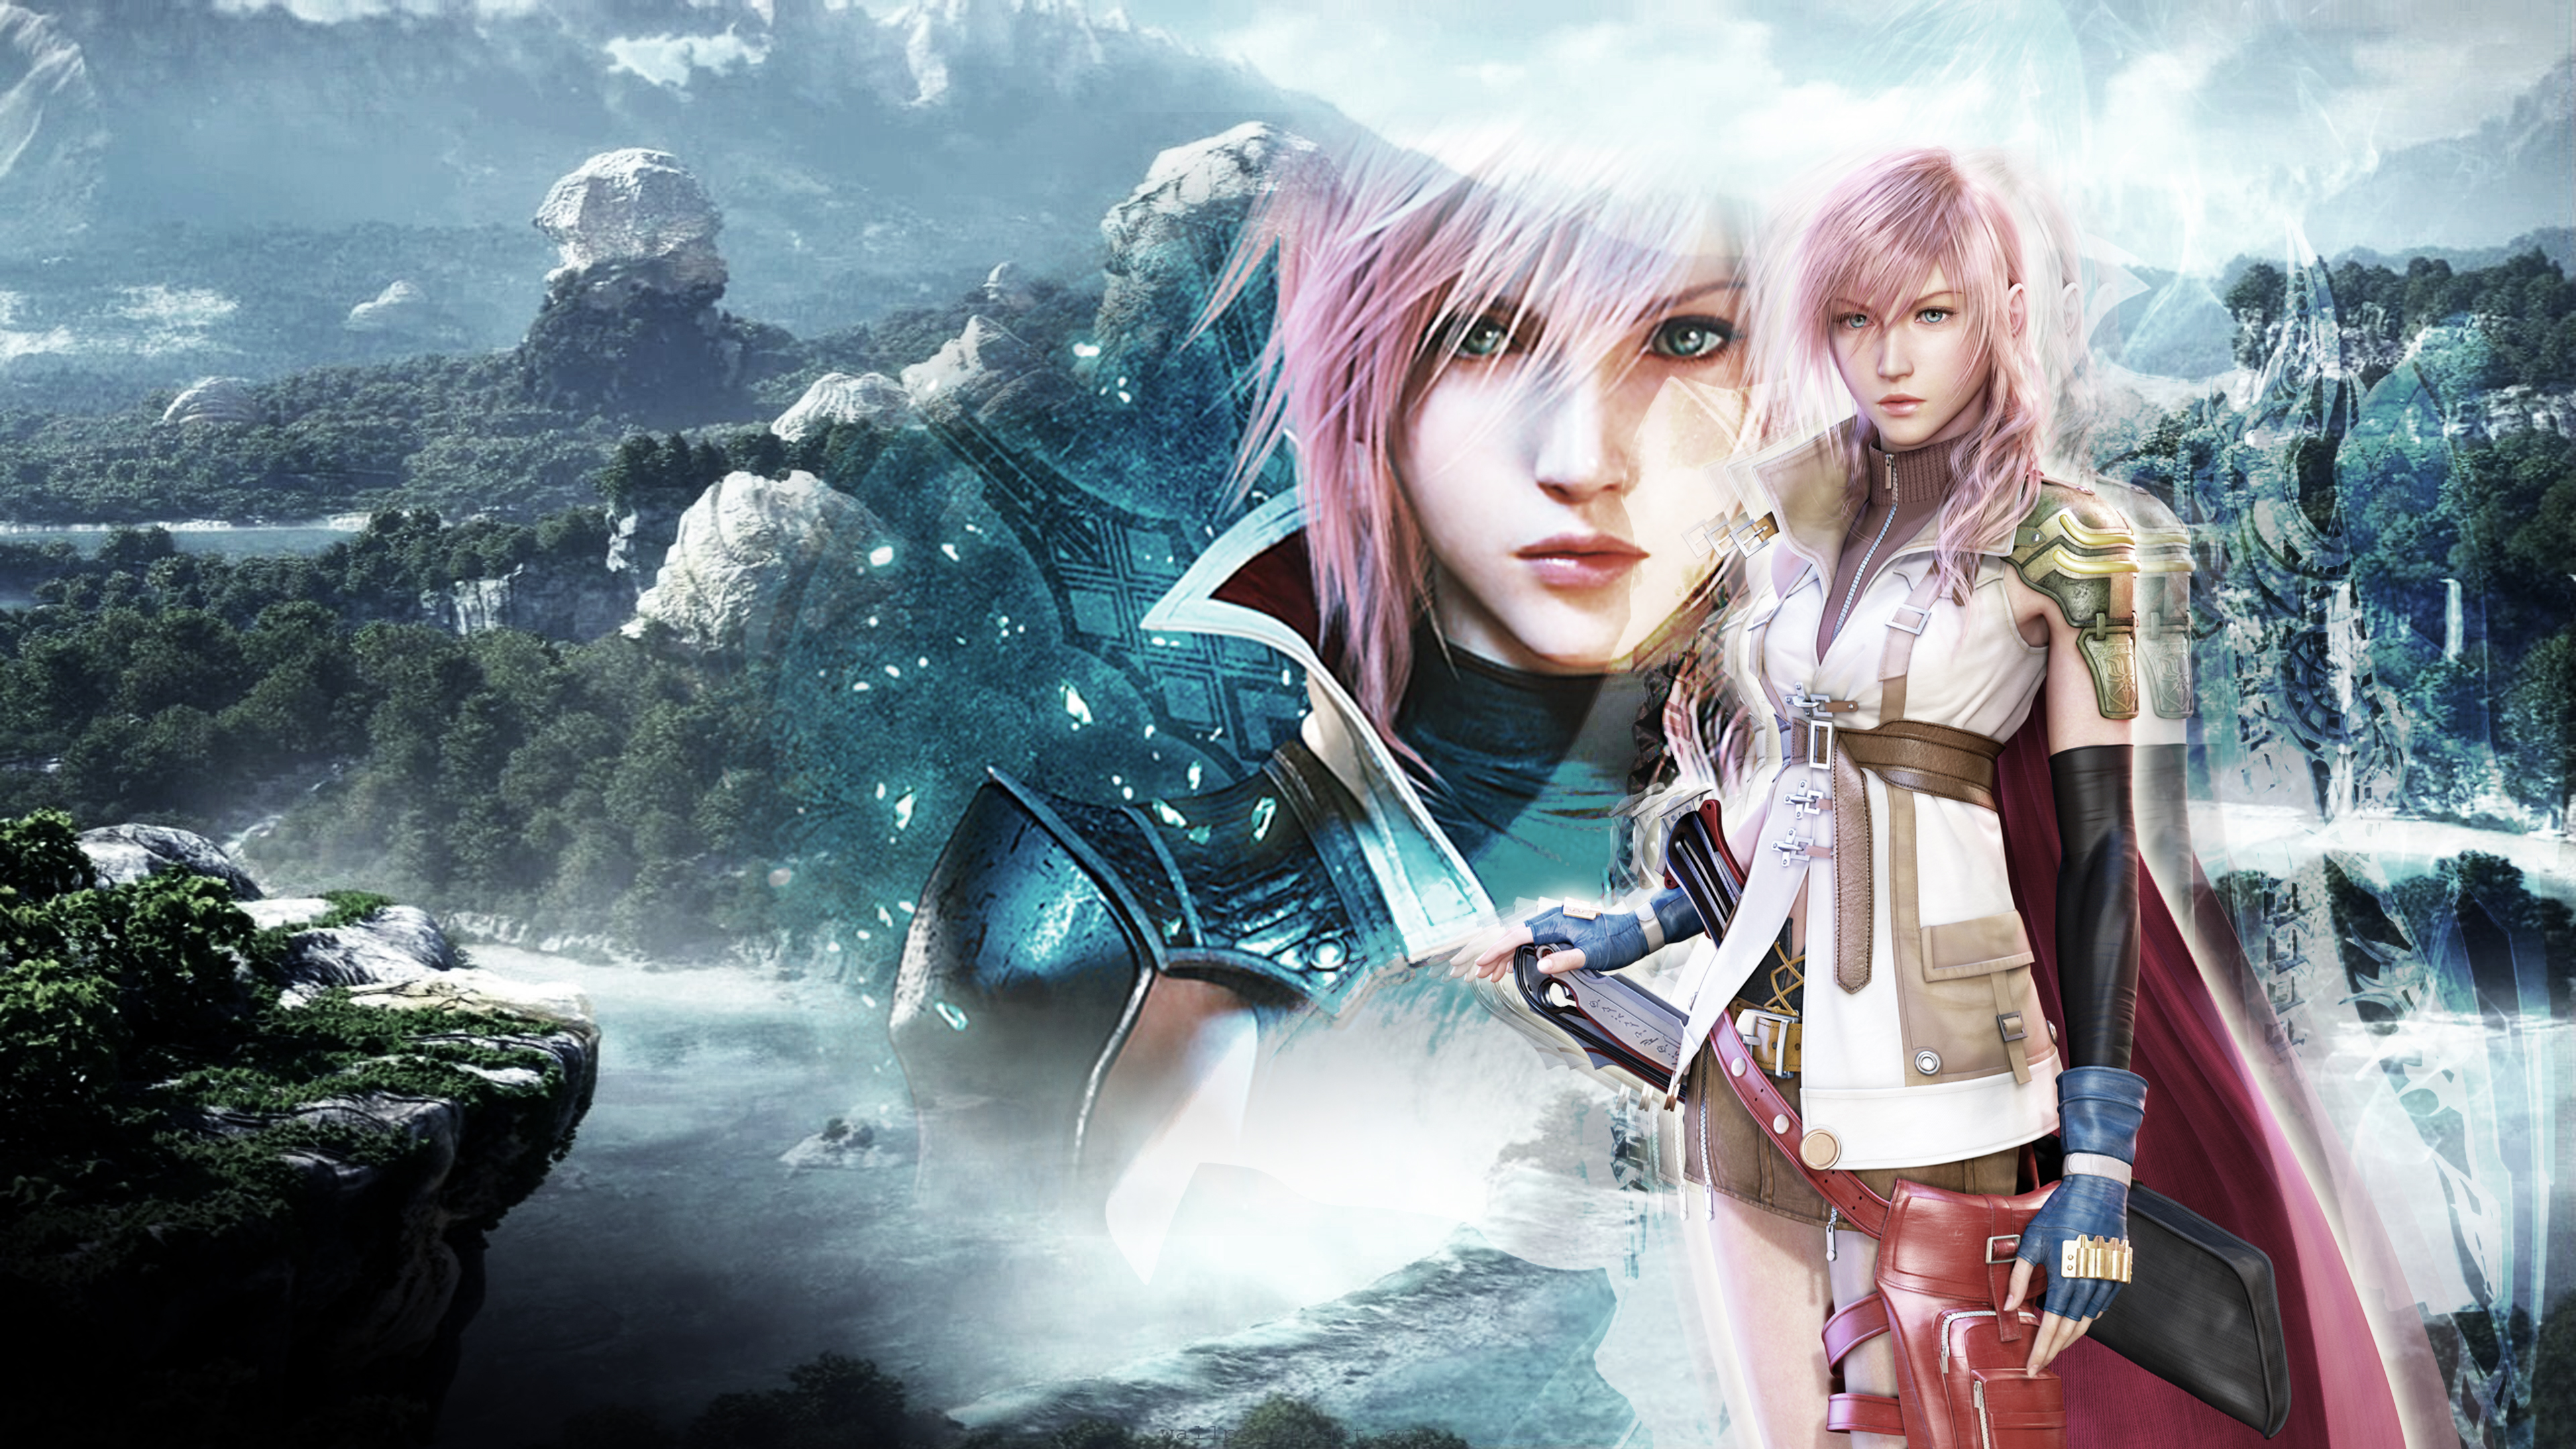 Final Fantasy Xiii Characters Wallpaper